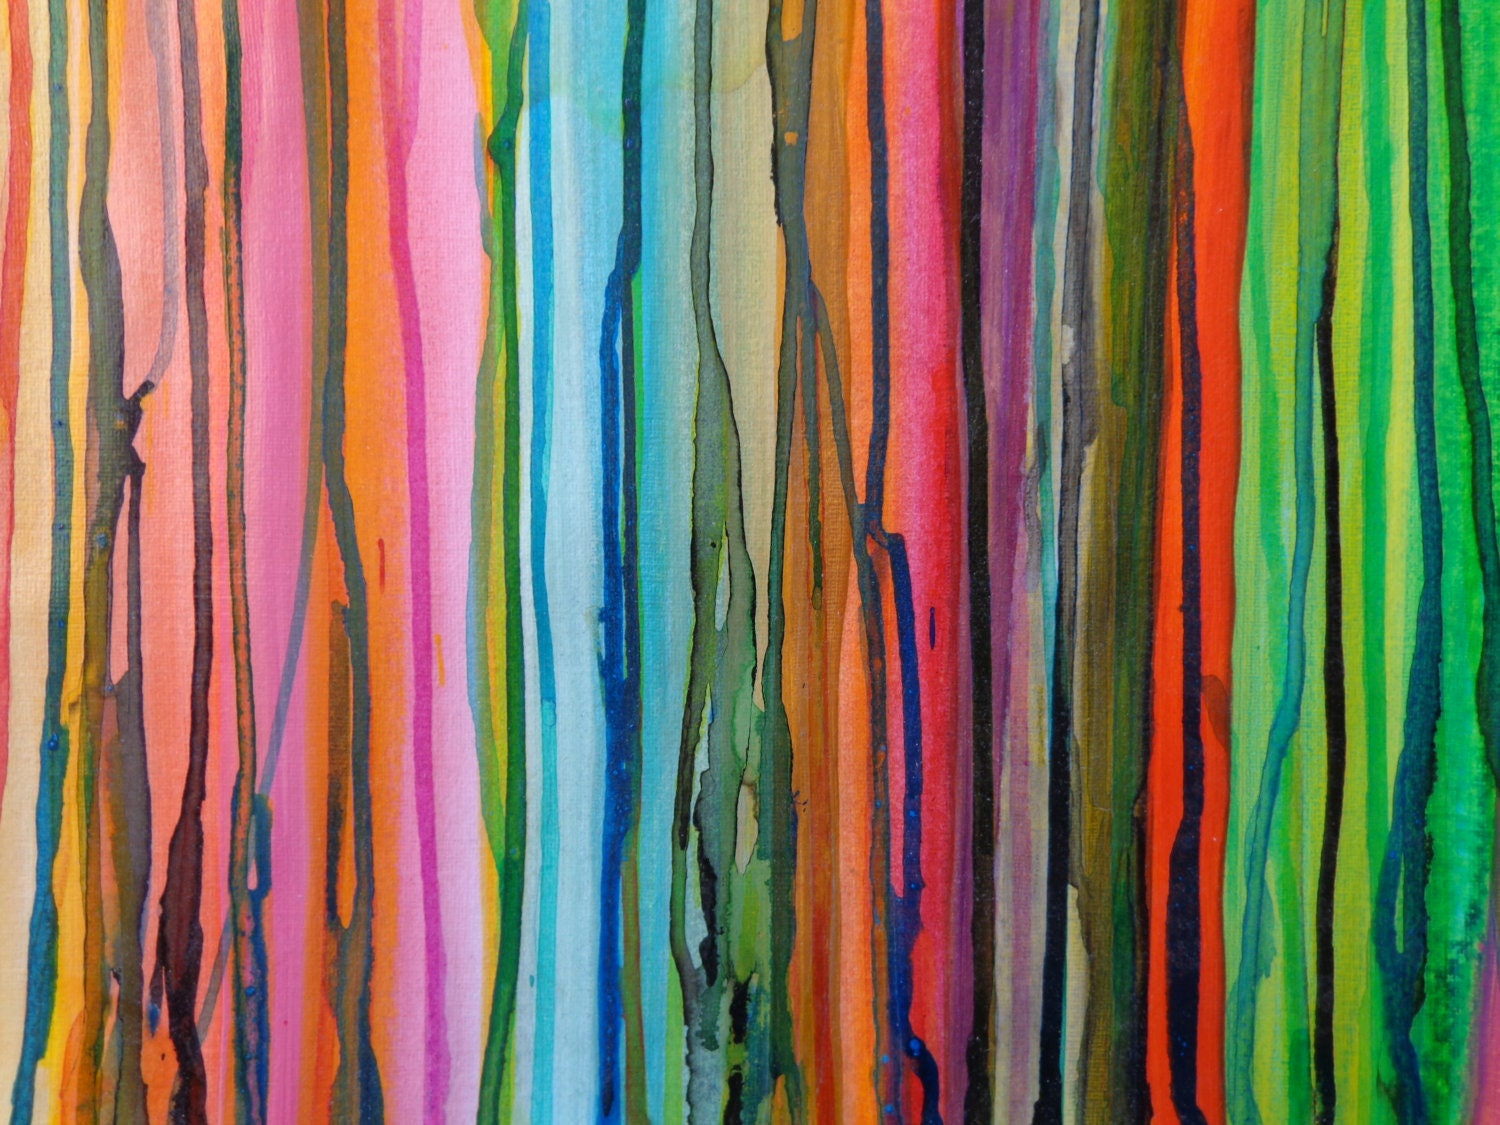 Original acrylic painting on canvas paper full for Acrylic painting on paper tips